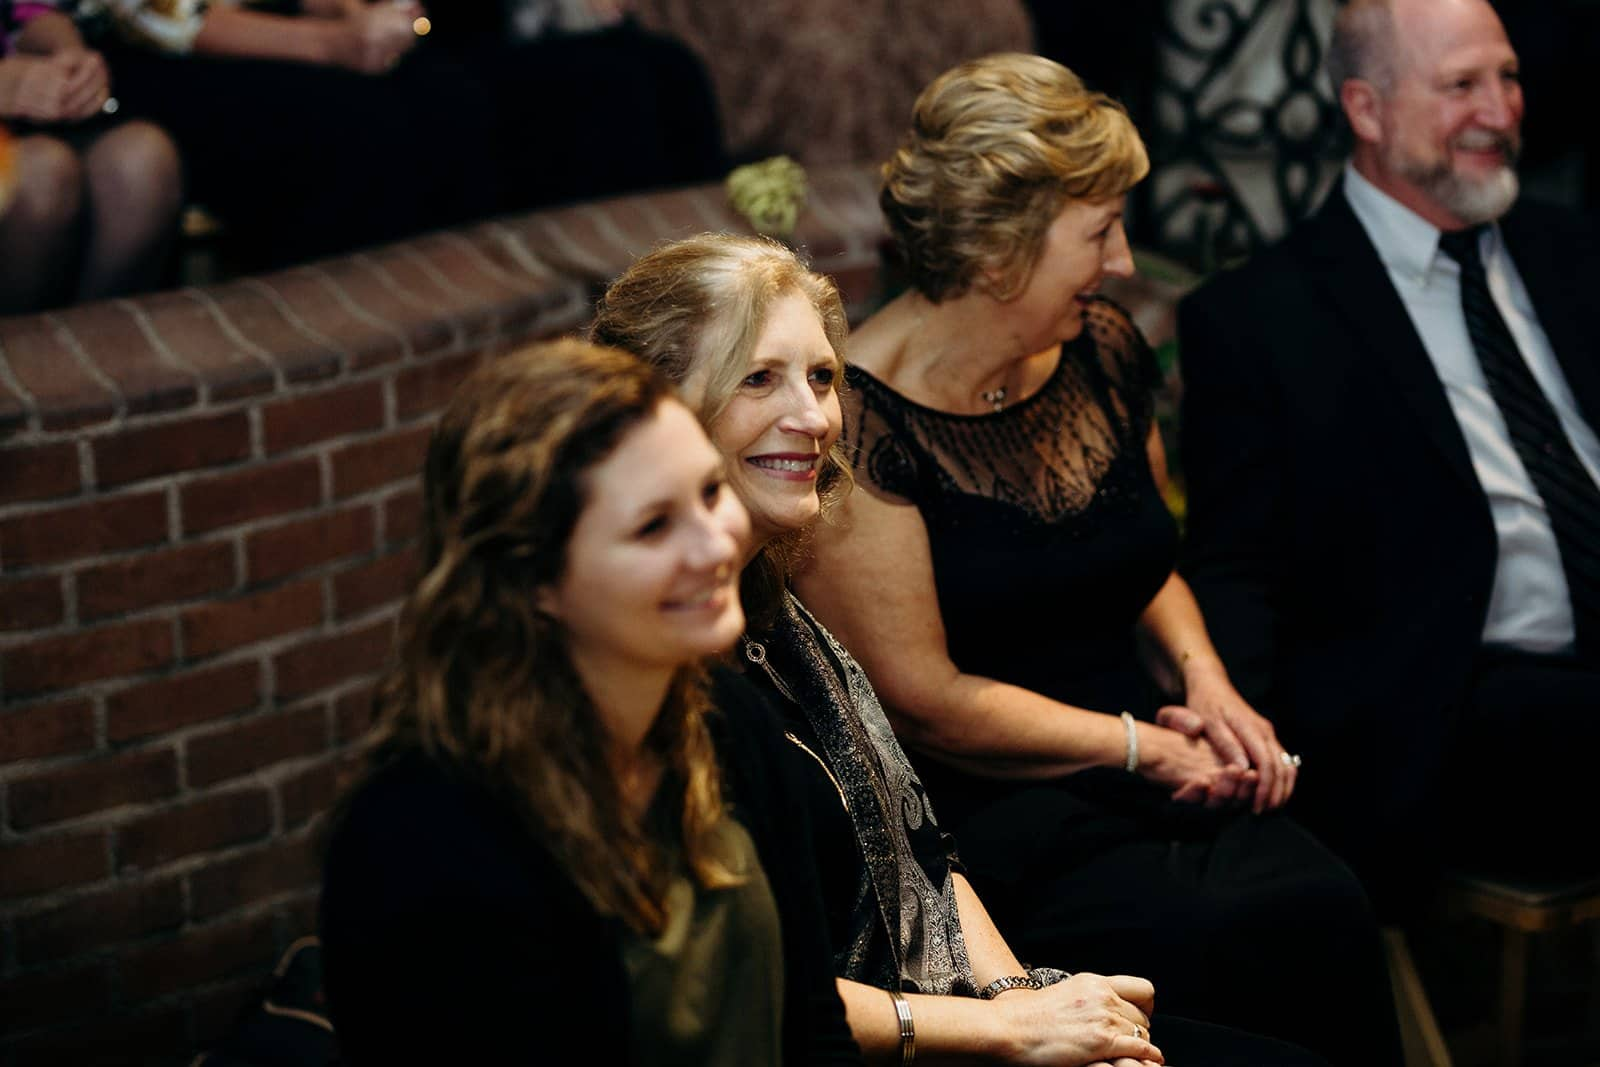 three women smile and laugh during ceremony